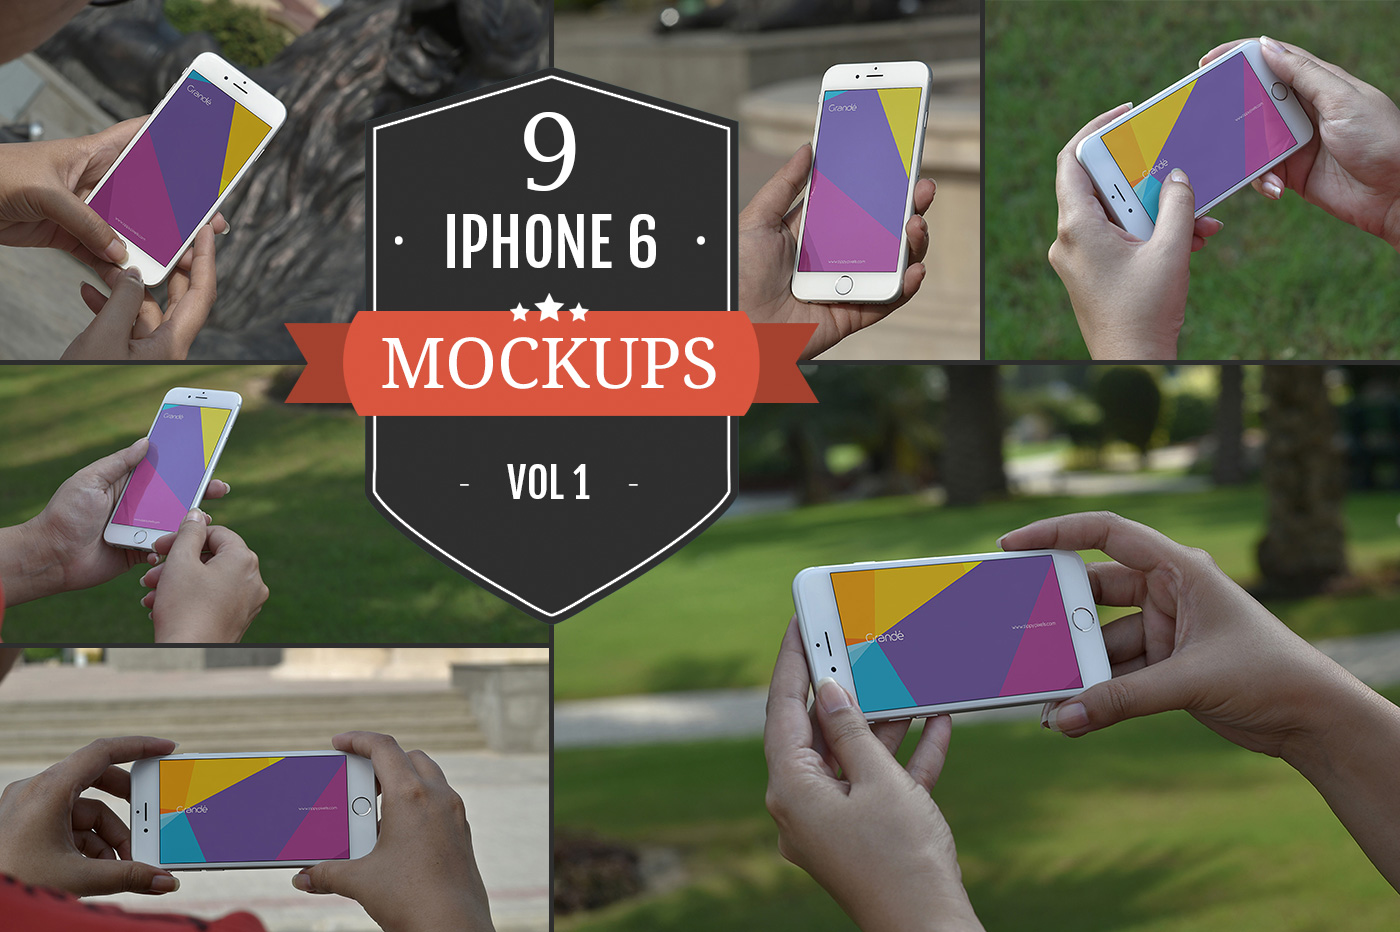 Apple-iPhone-6-Outdoor-Mockups-Vol.1